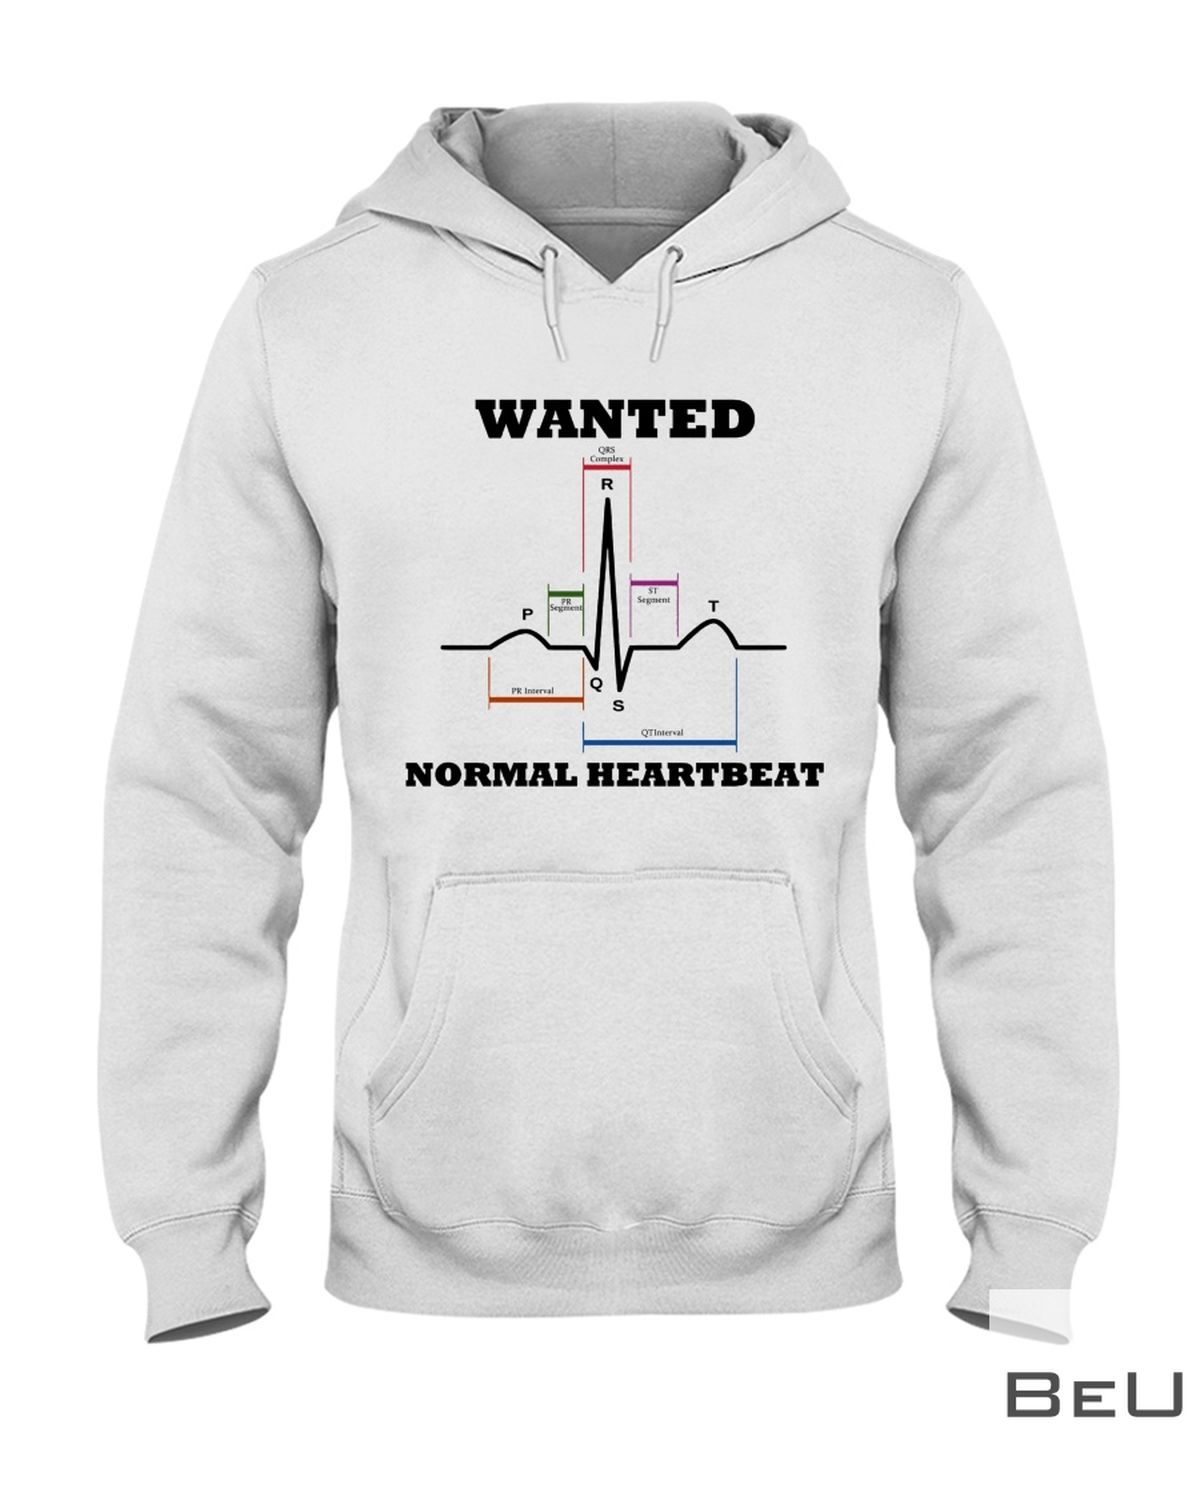 Cardiologist Wanted Normal Heartbeat Shirt z